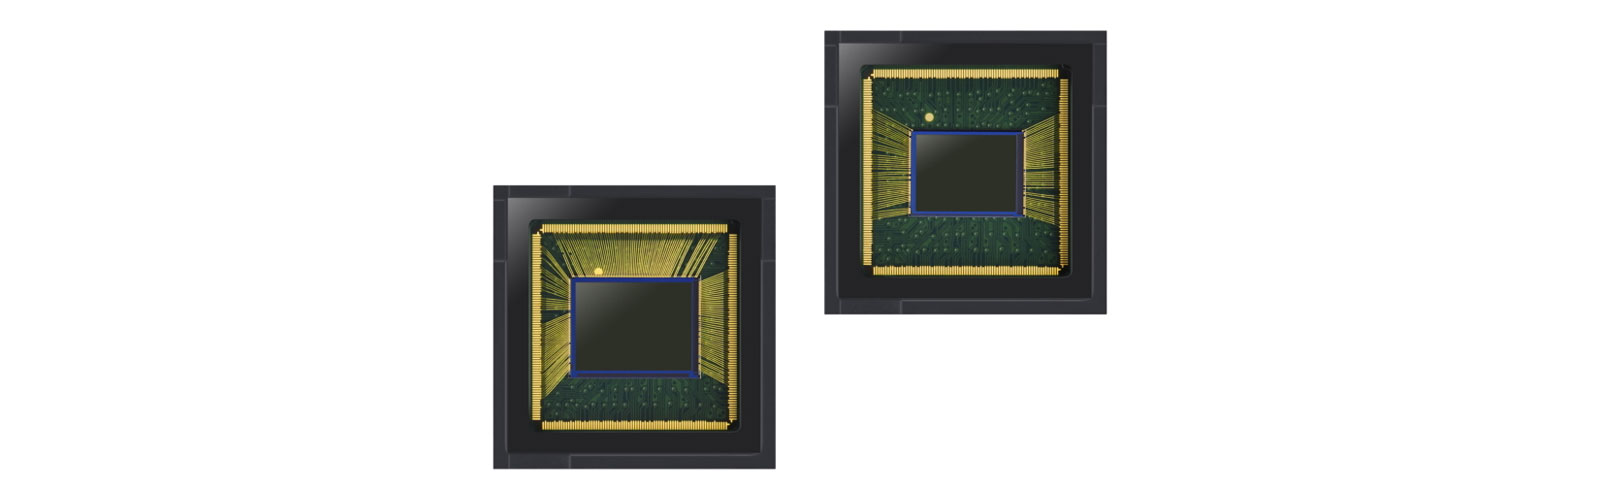 Samsung unveils a 64MP ISOCELL image sensor for mobiles - the industry's highest resolution